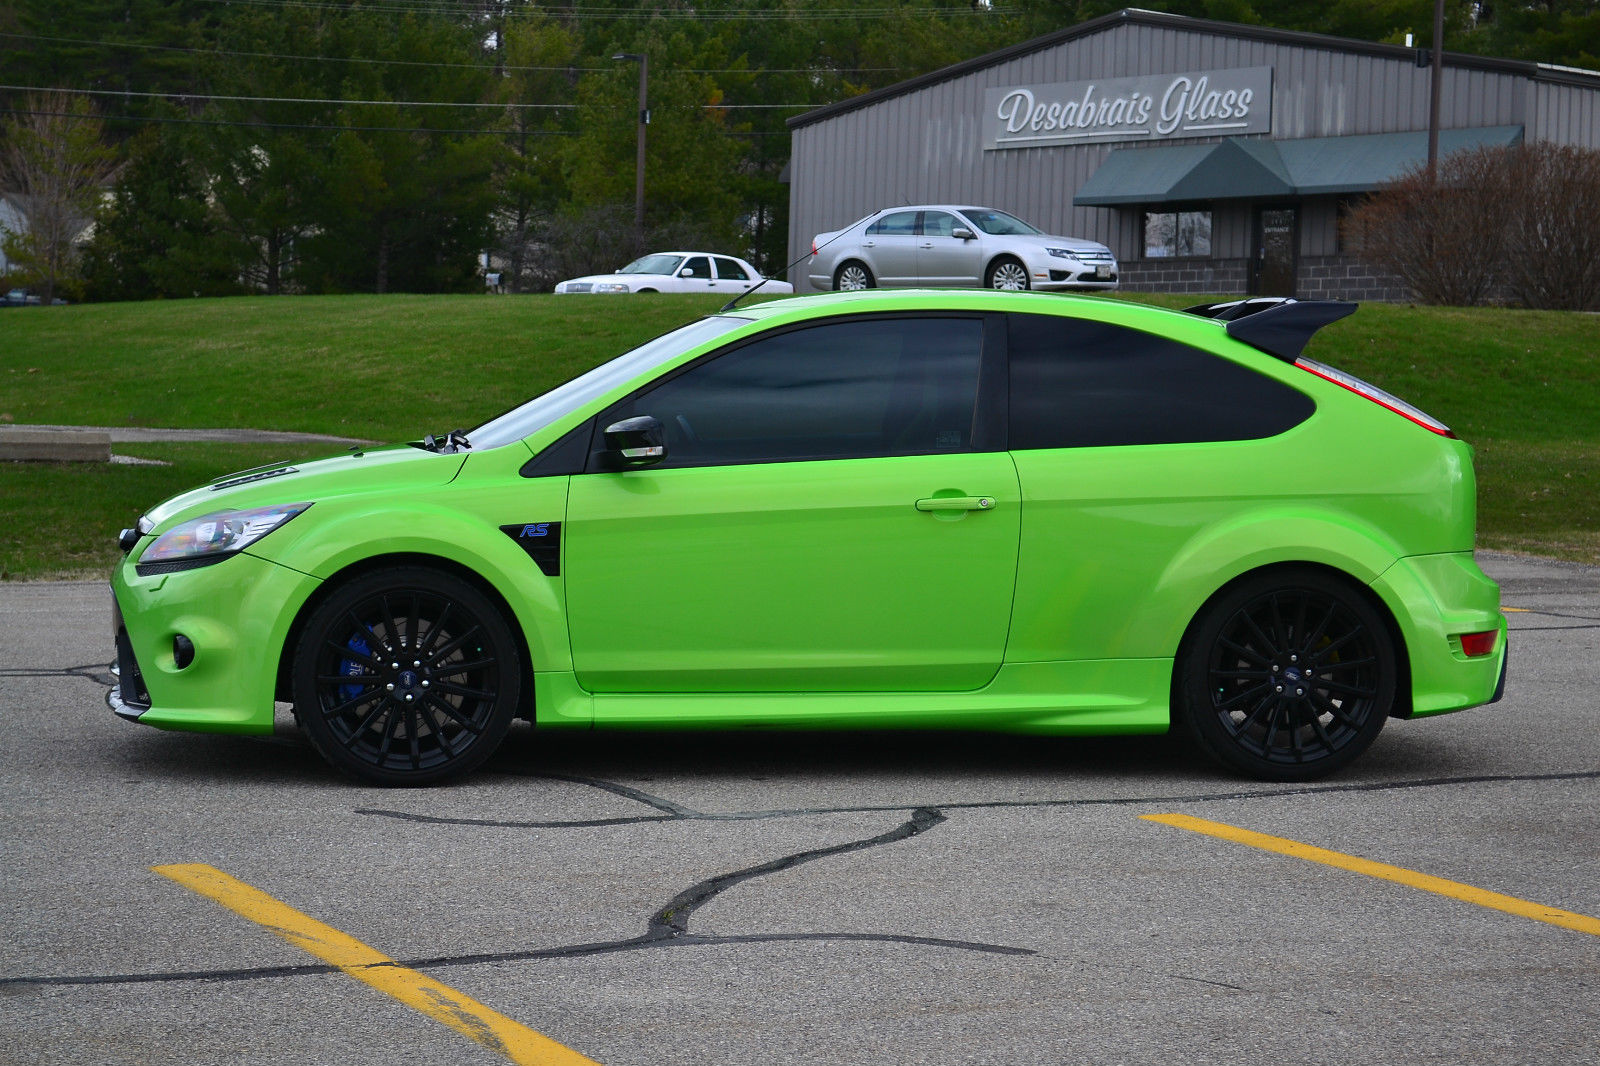 2010 ford focus rs ebay photo 10 the news wheel. Black Bedroom Furniture Sets. Home Design Ideas